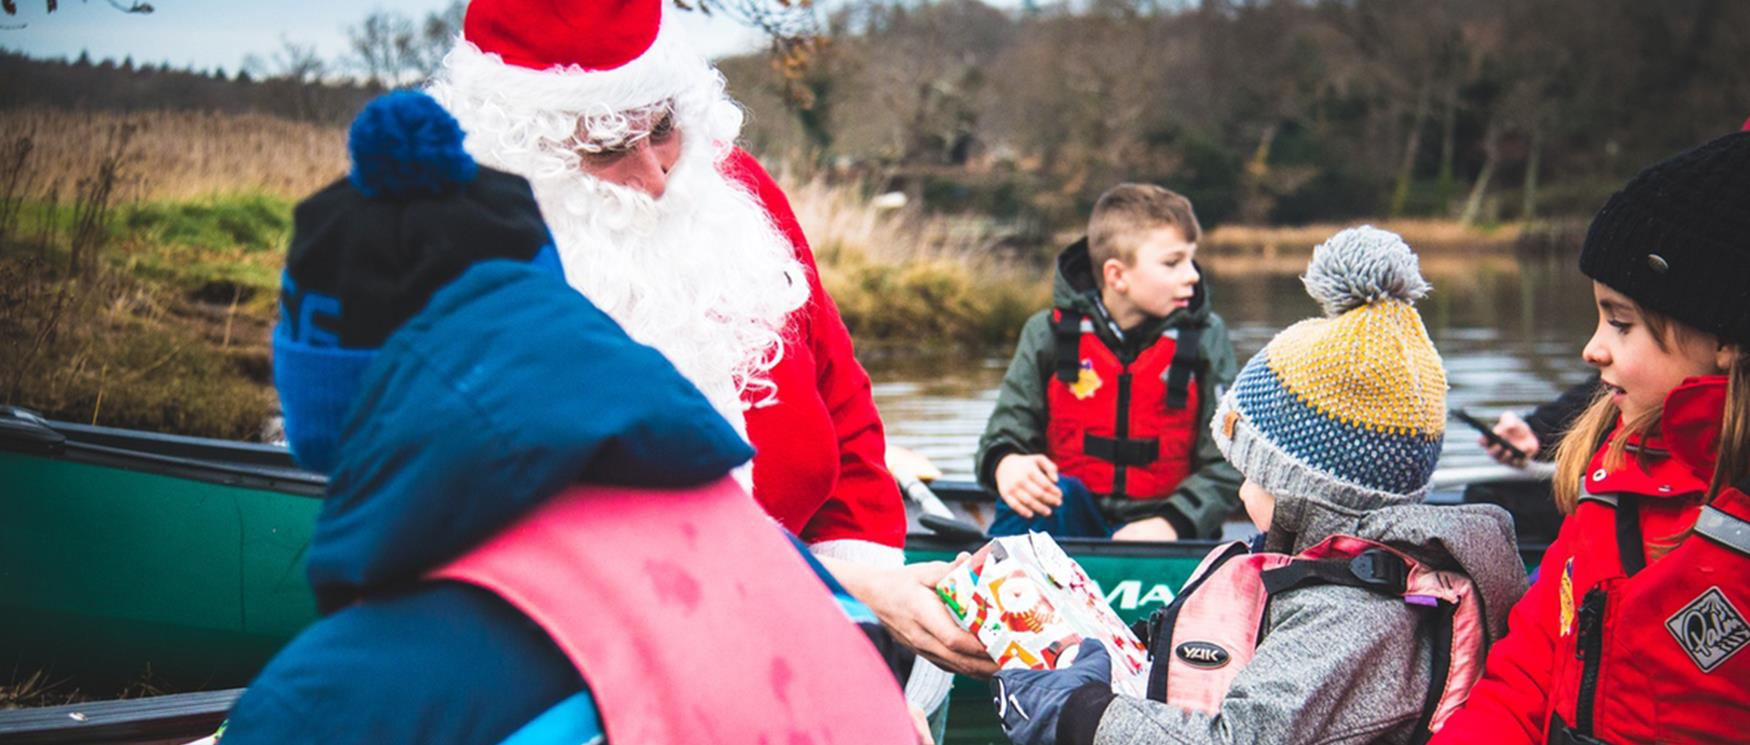 New Forest Activities Canoeing with Santa in the New Forest